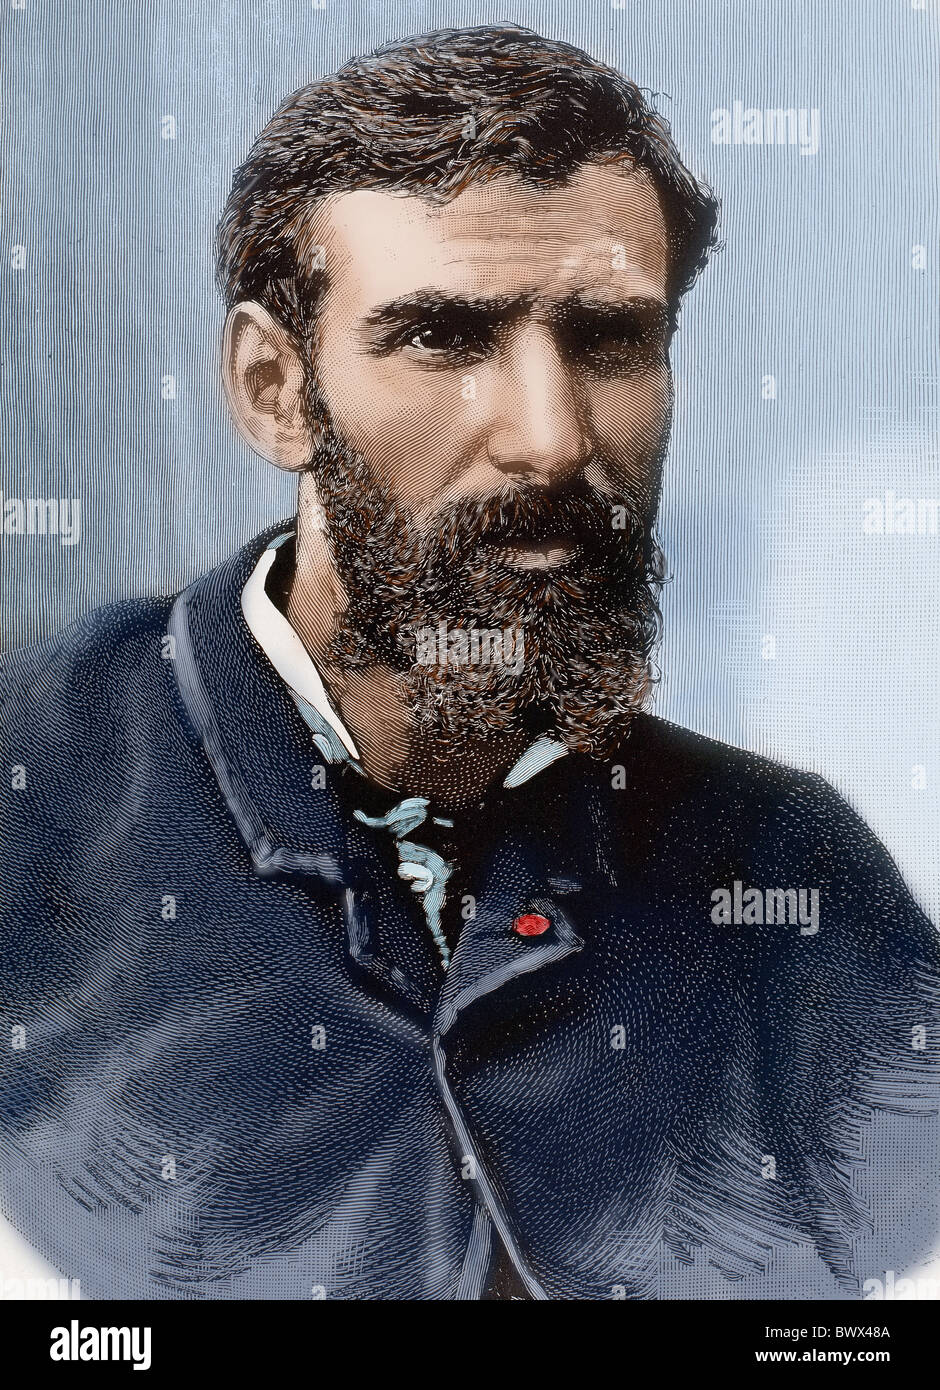 Brazza, Pierre-Paul Savorgnan de (1852-1905). French explorer and navigator of Italian origin. Colored engraving. - Stock Image